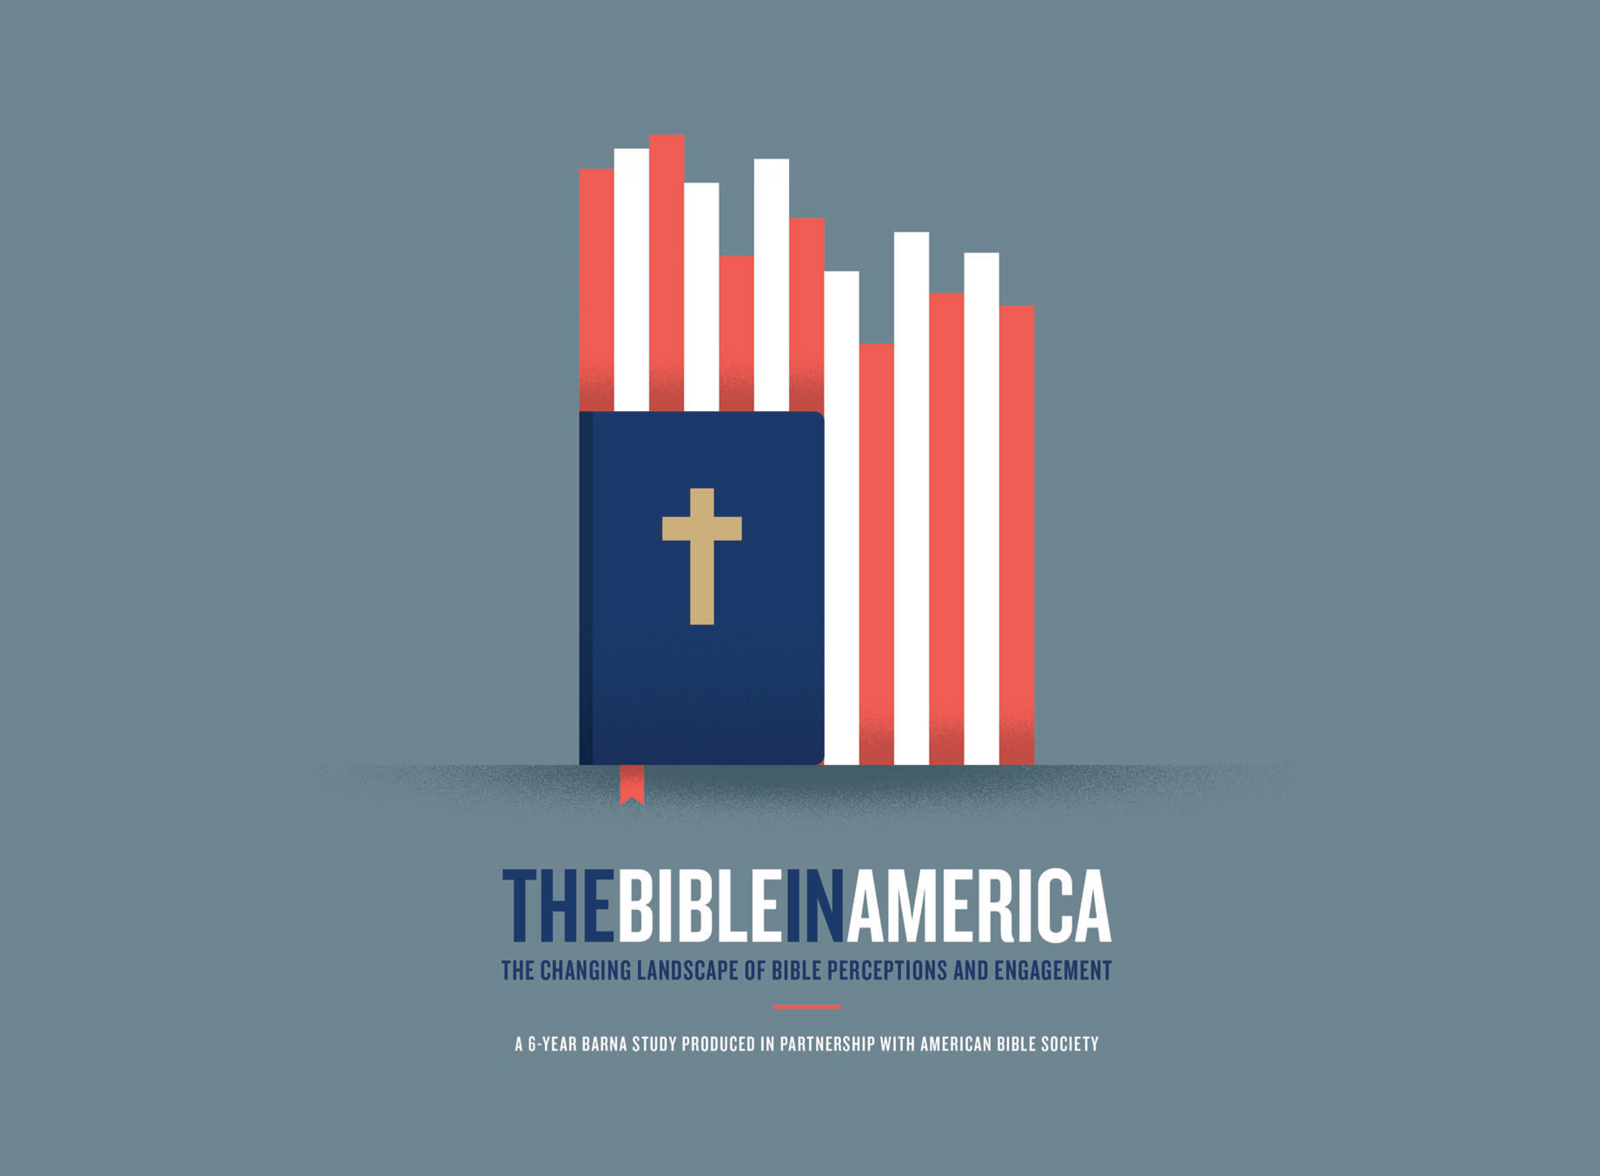 The Bible in America